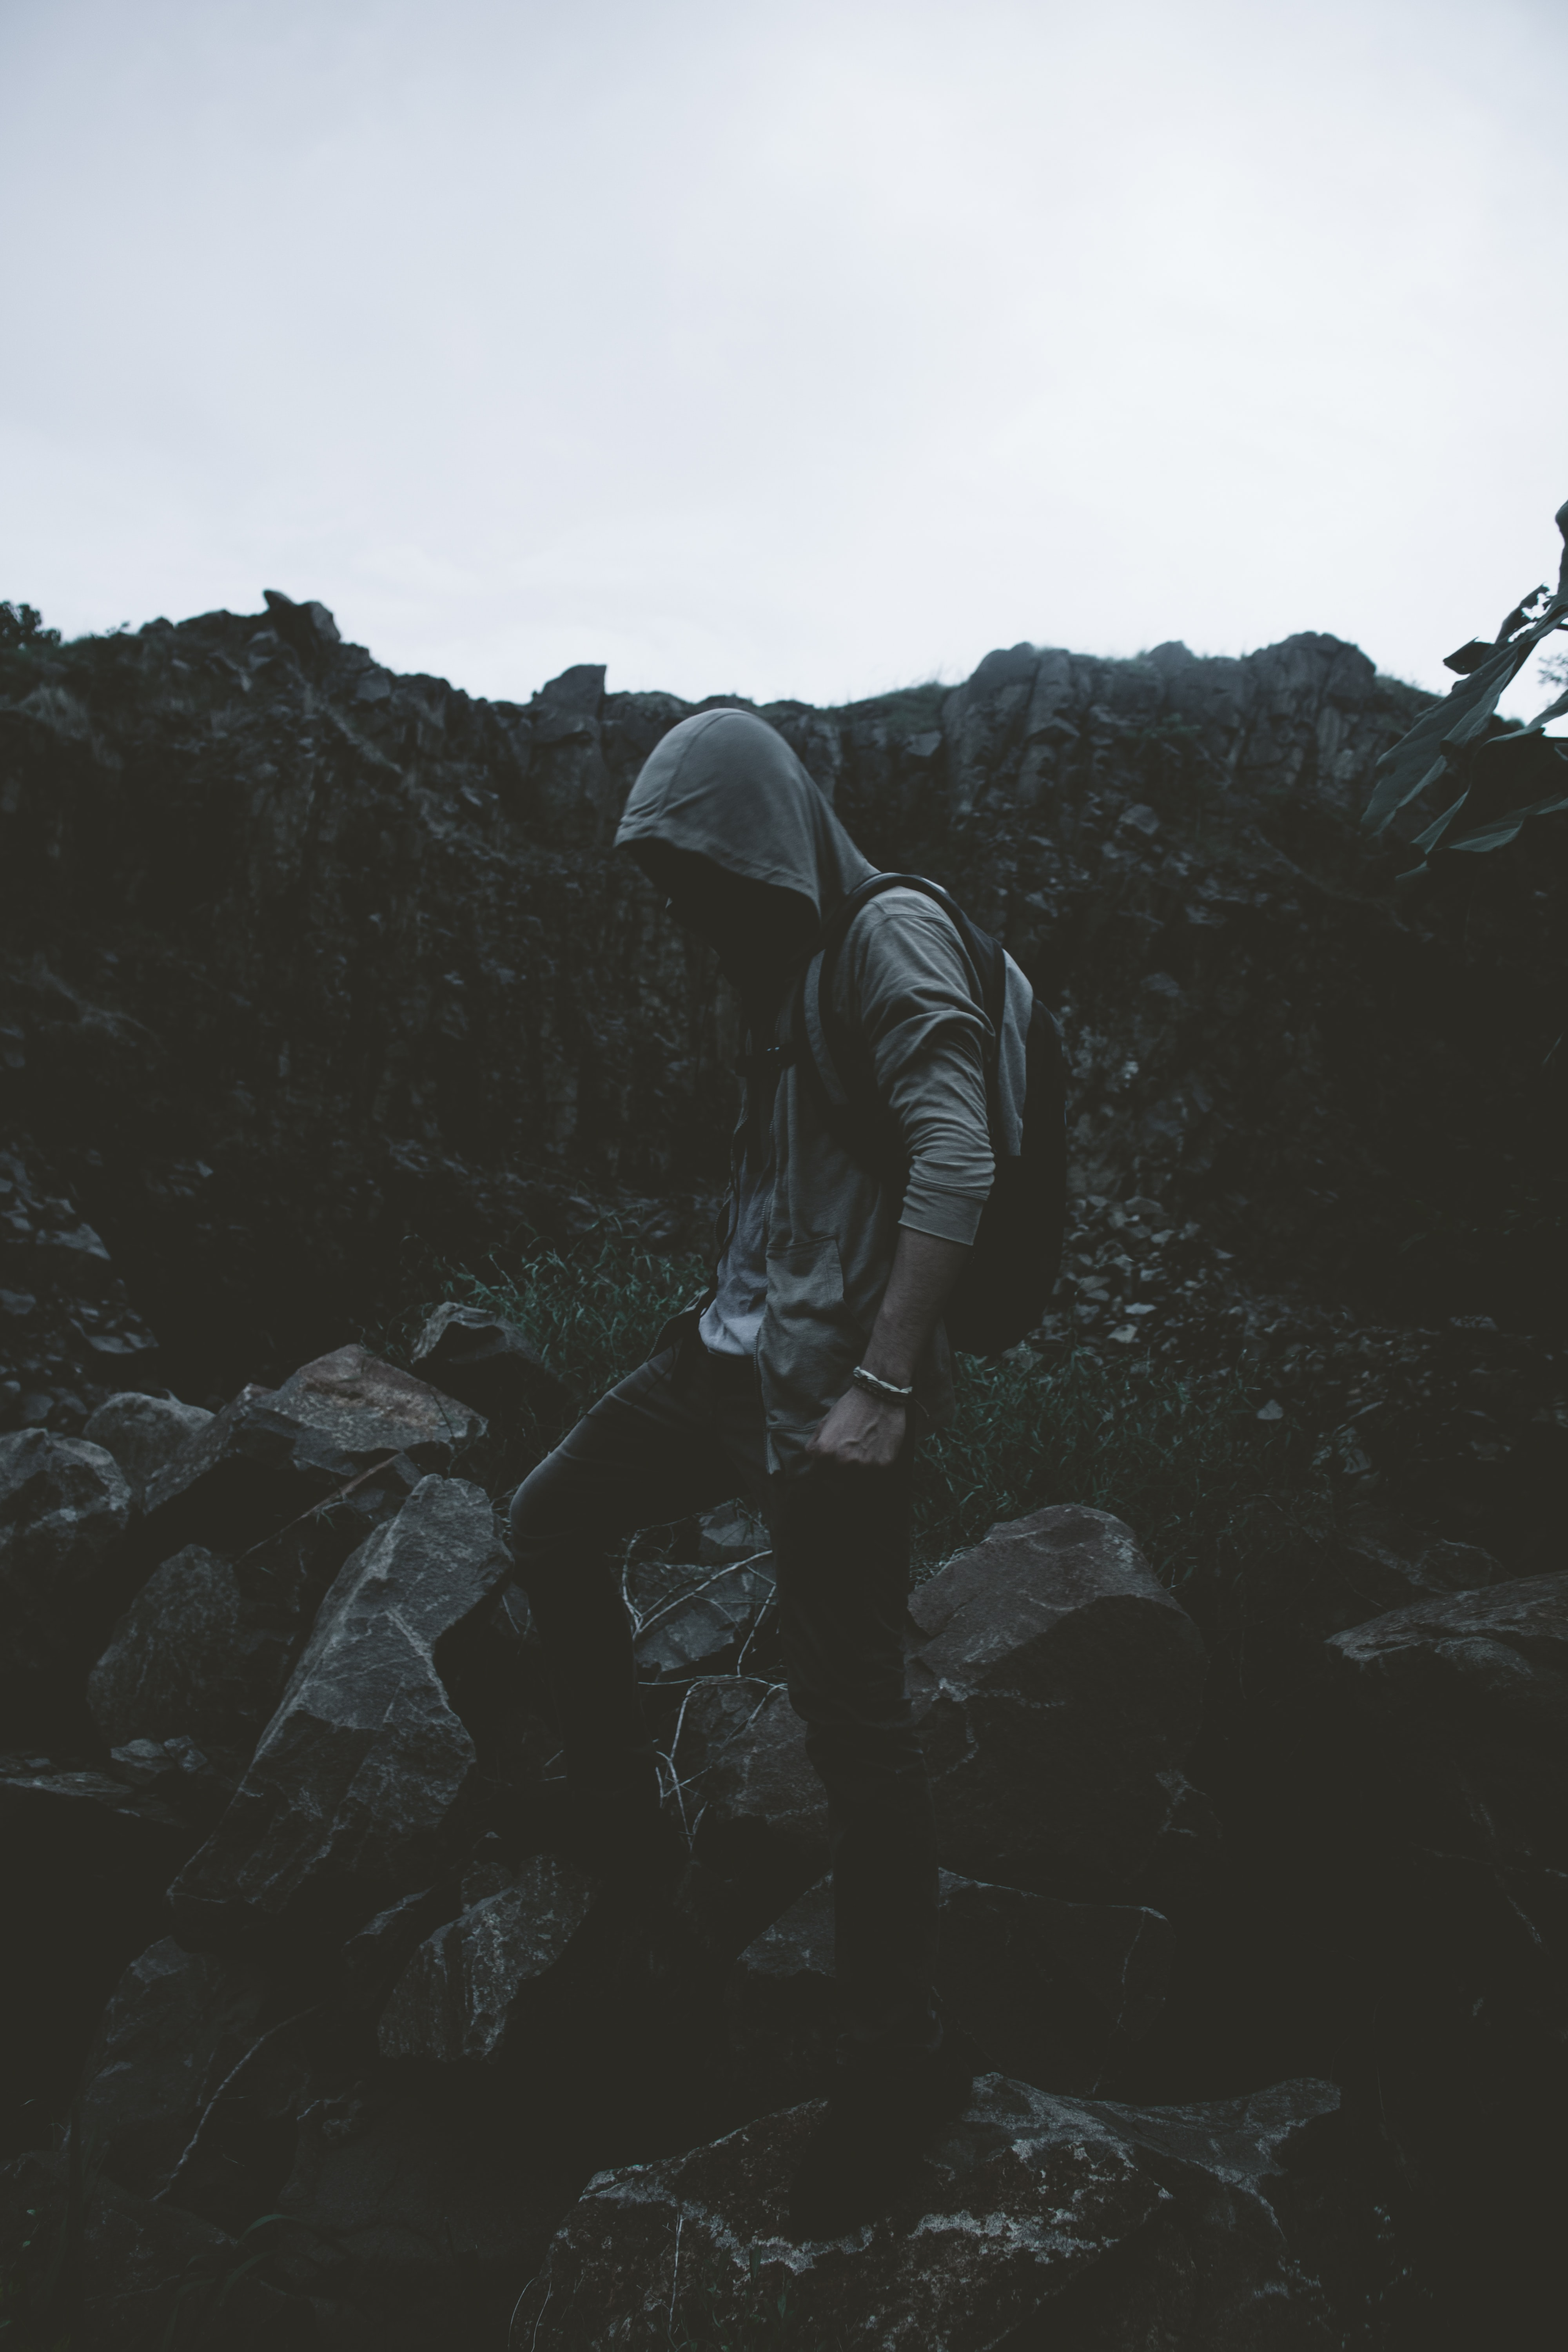 man in hoodie stepping on rocks